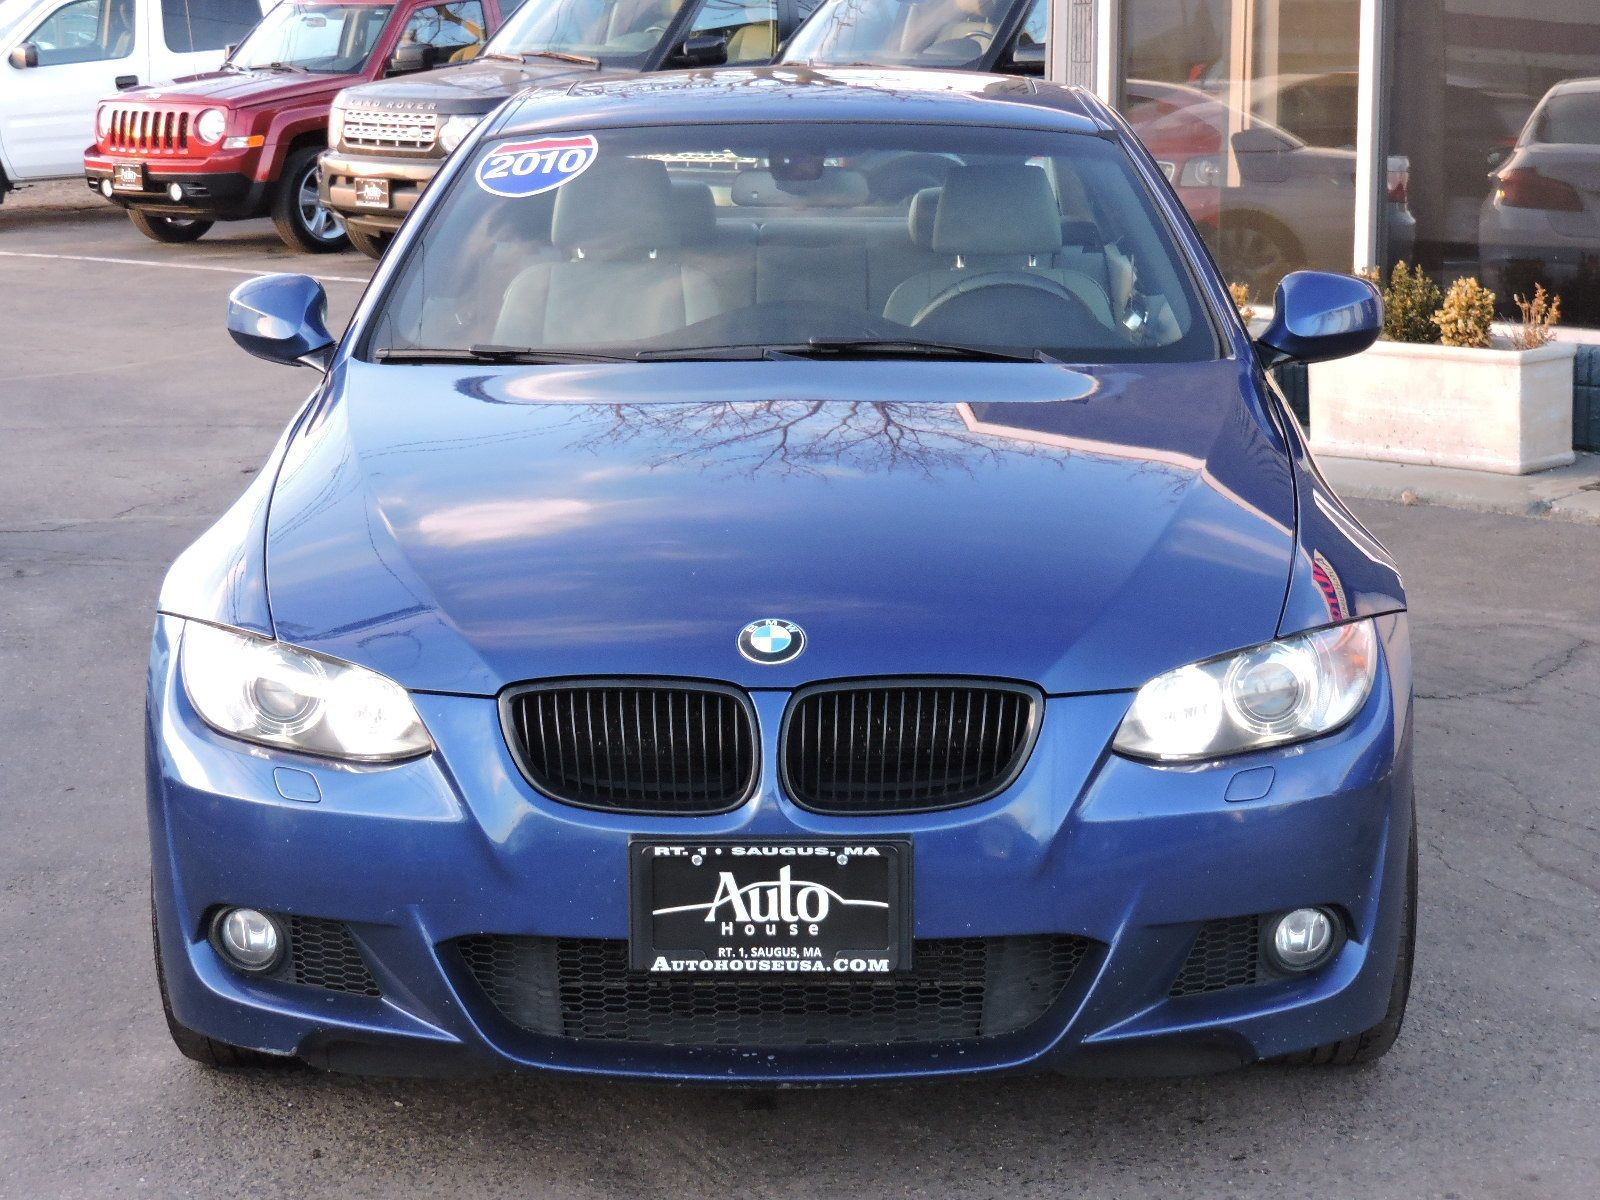 hight resolution of  2010 bmw 3 series 328i xdrive m sport 6 speed awd coupe